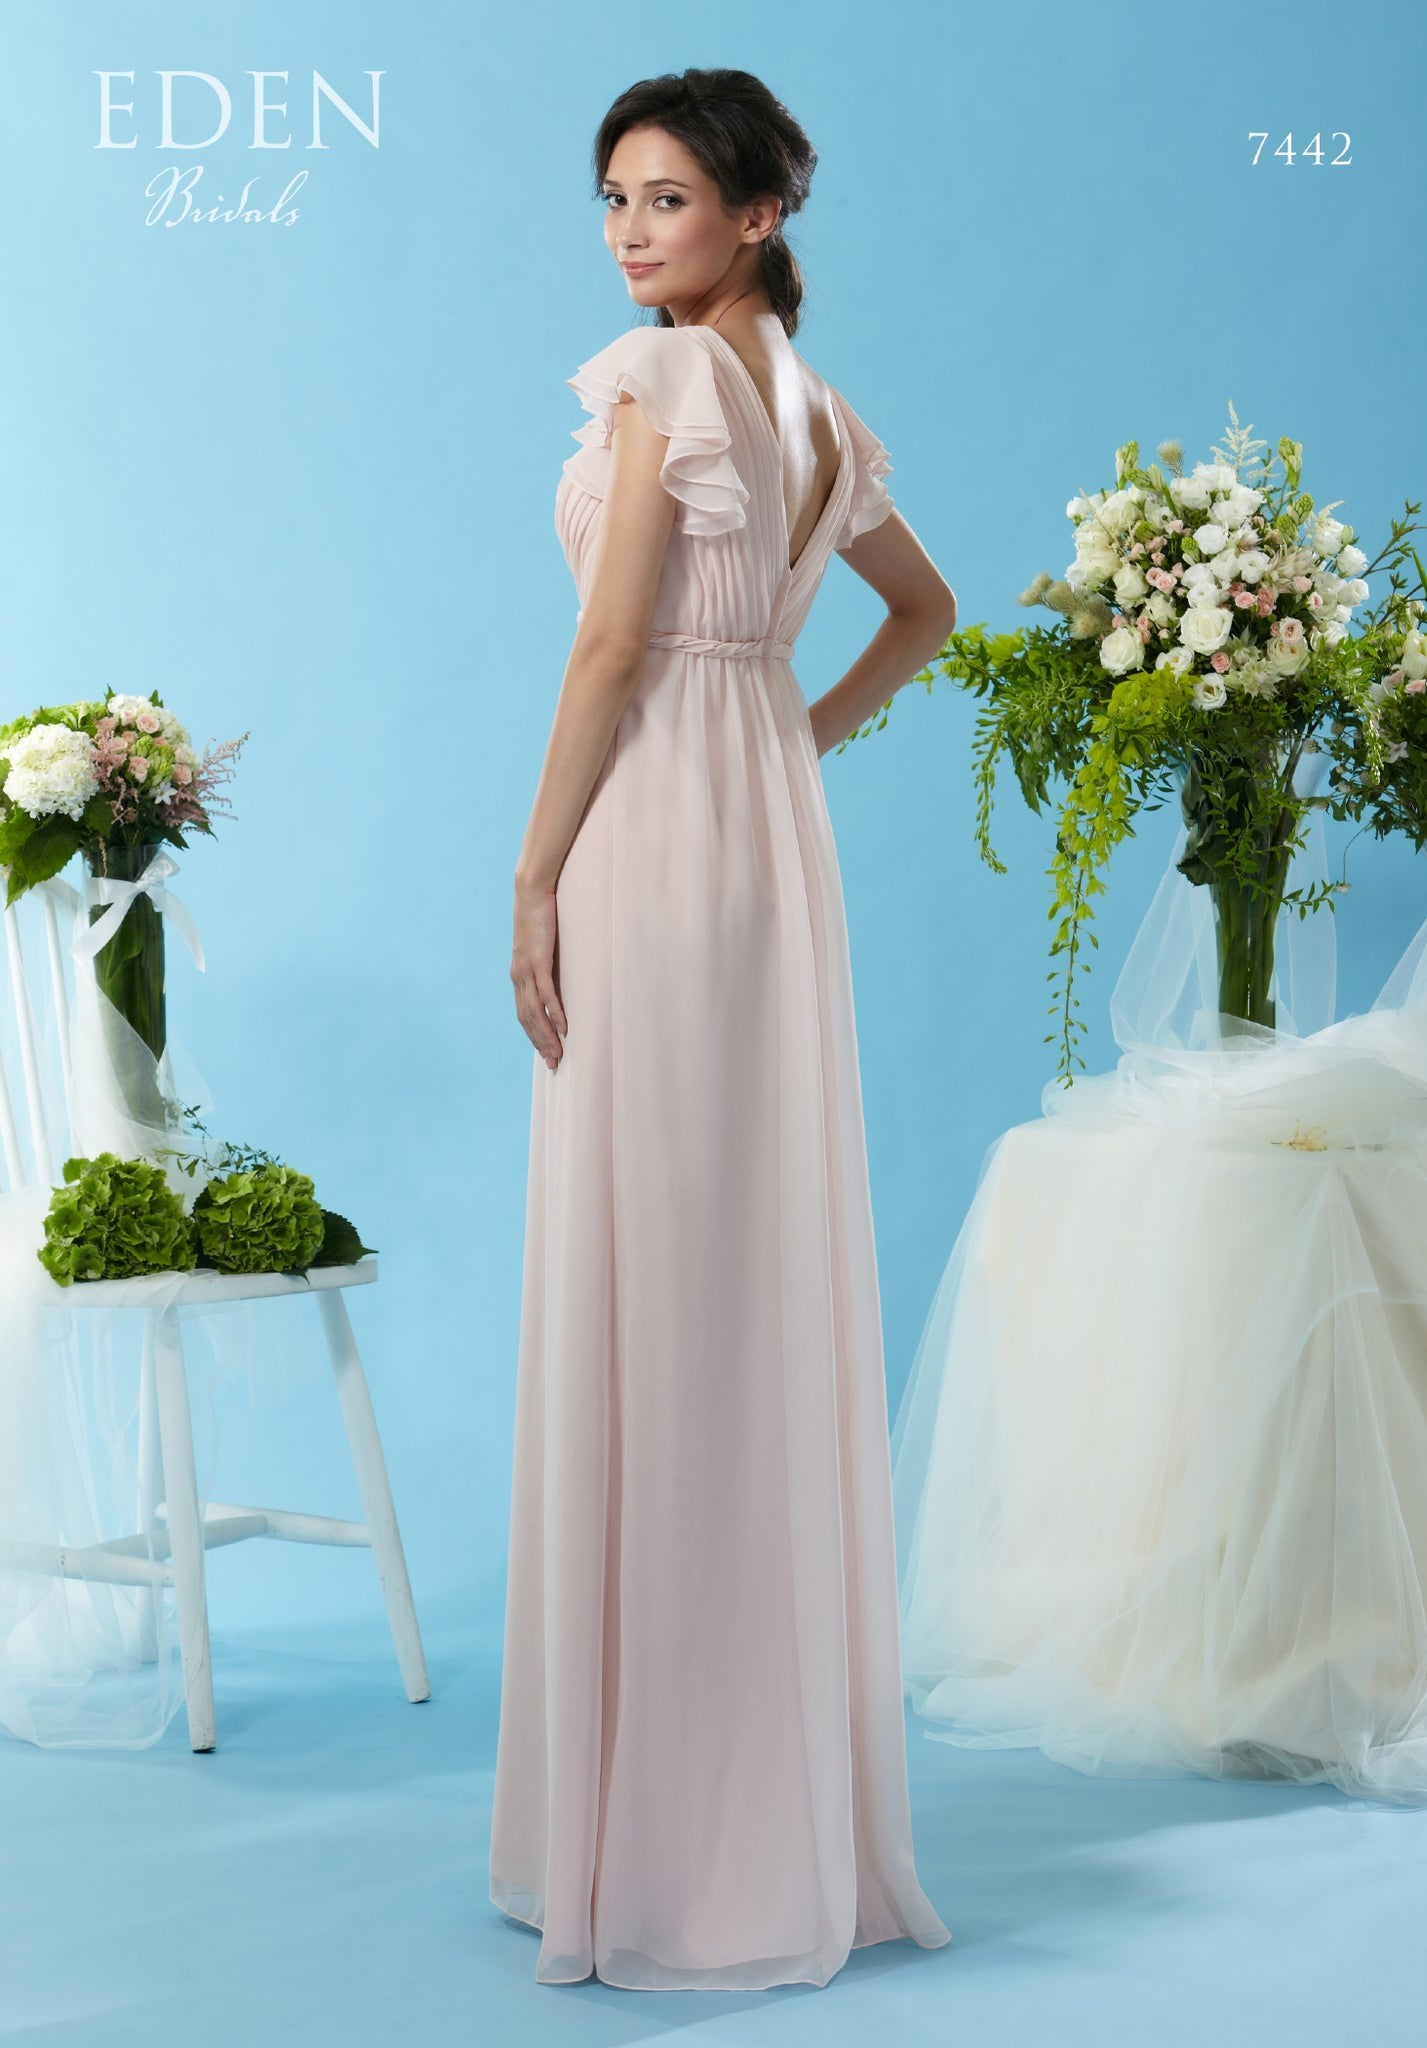 Floor length gown from the Emma Bridals collection